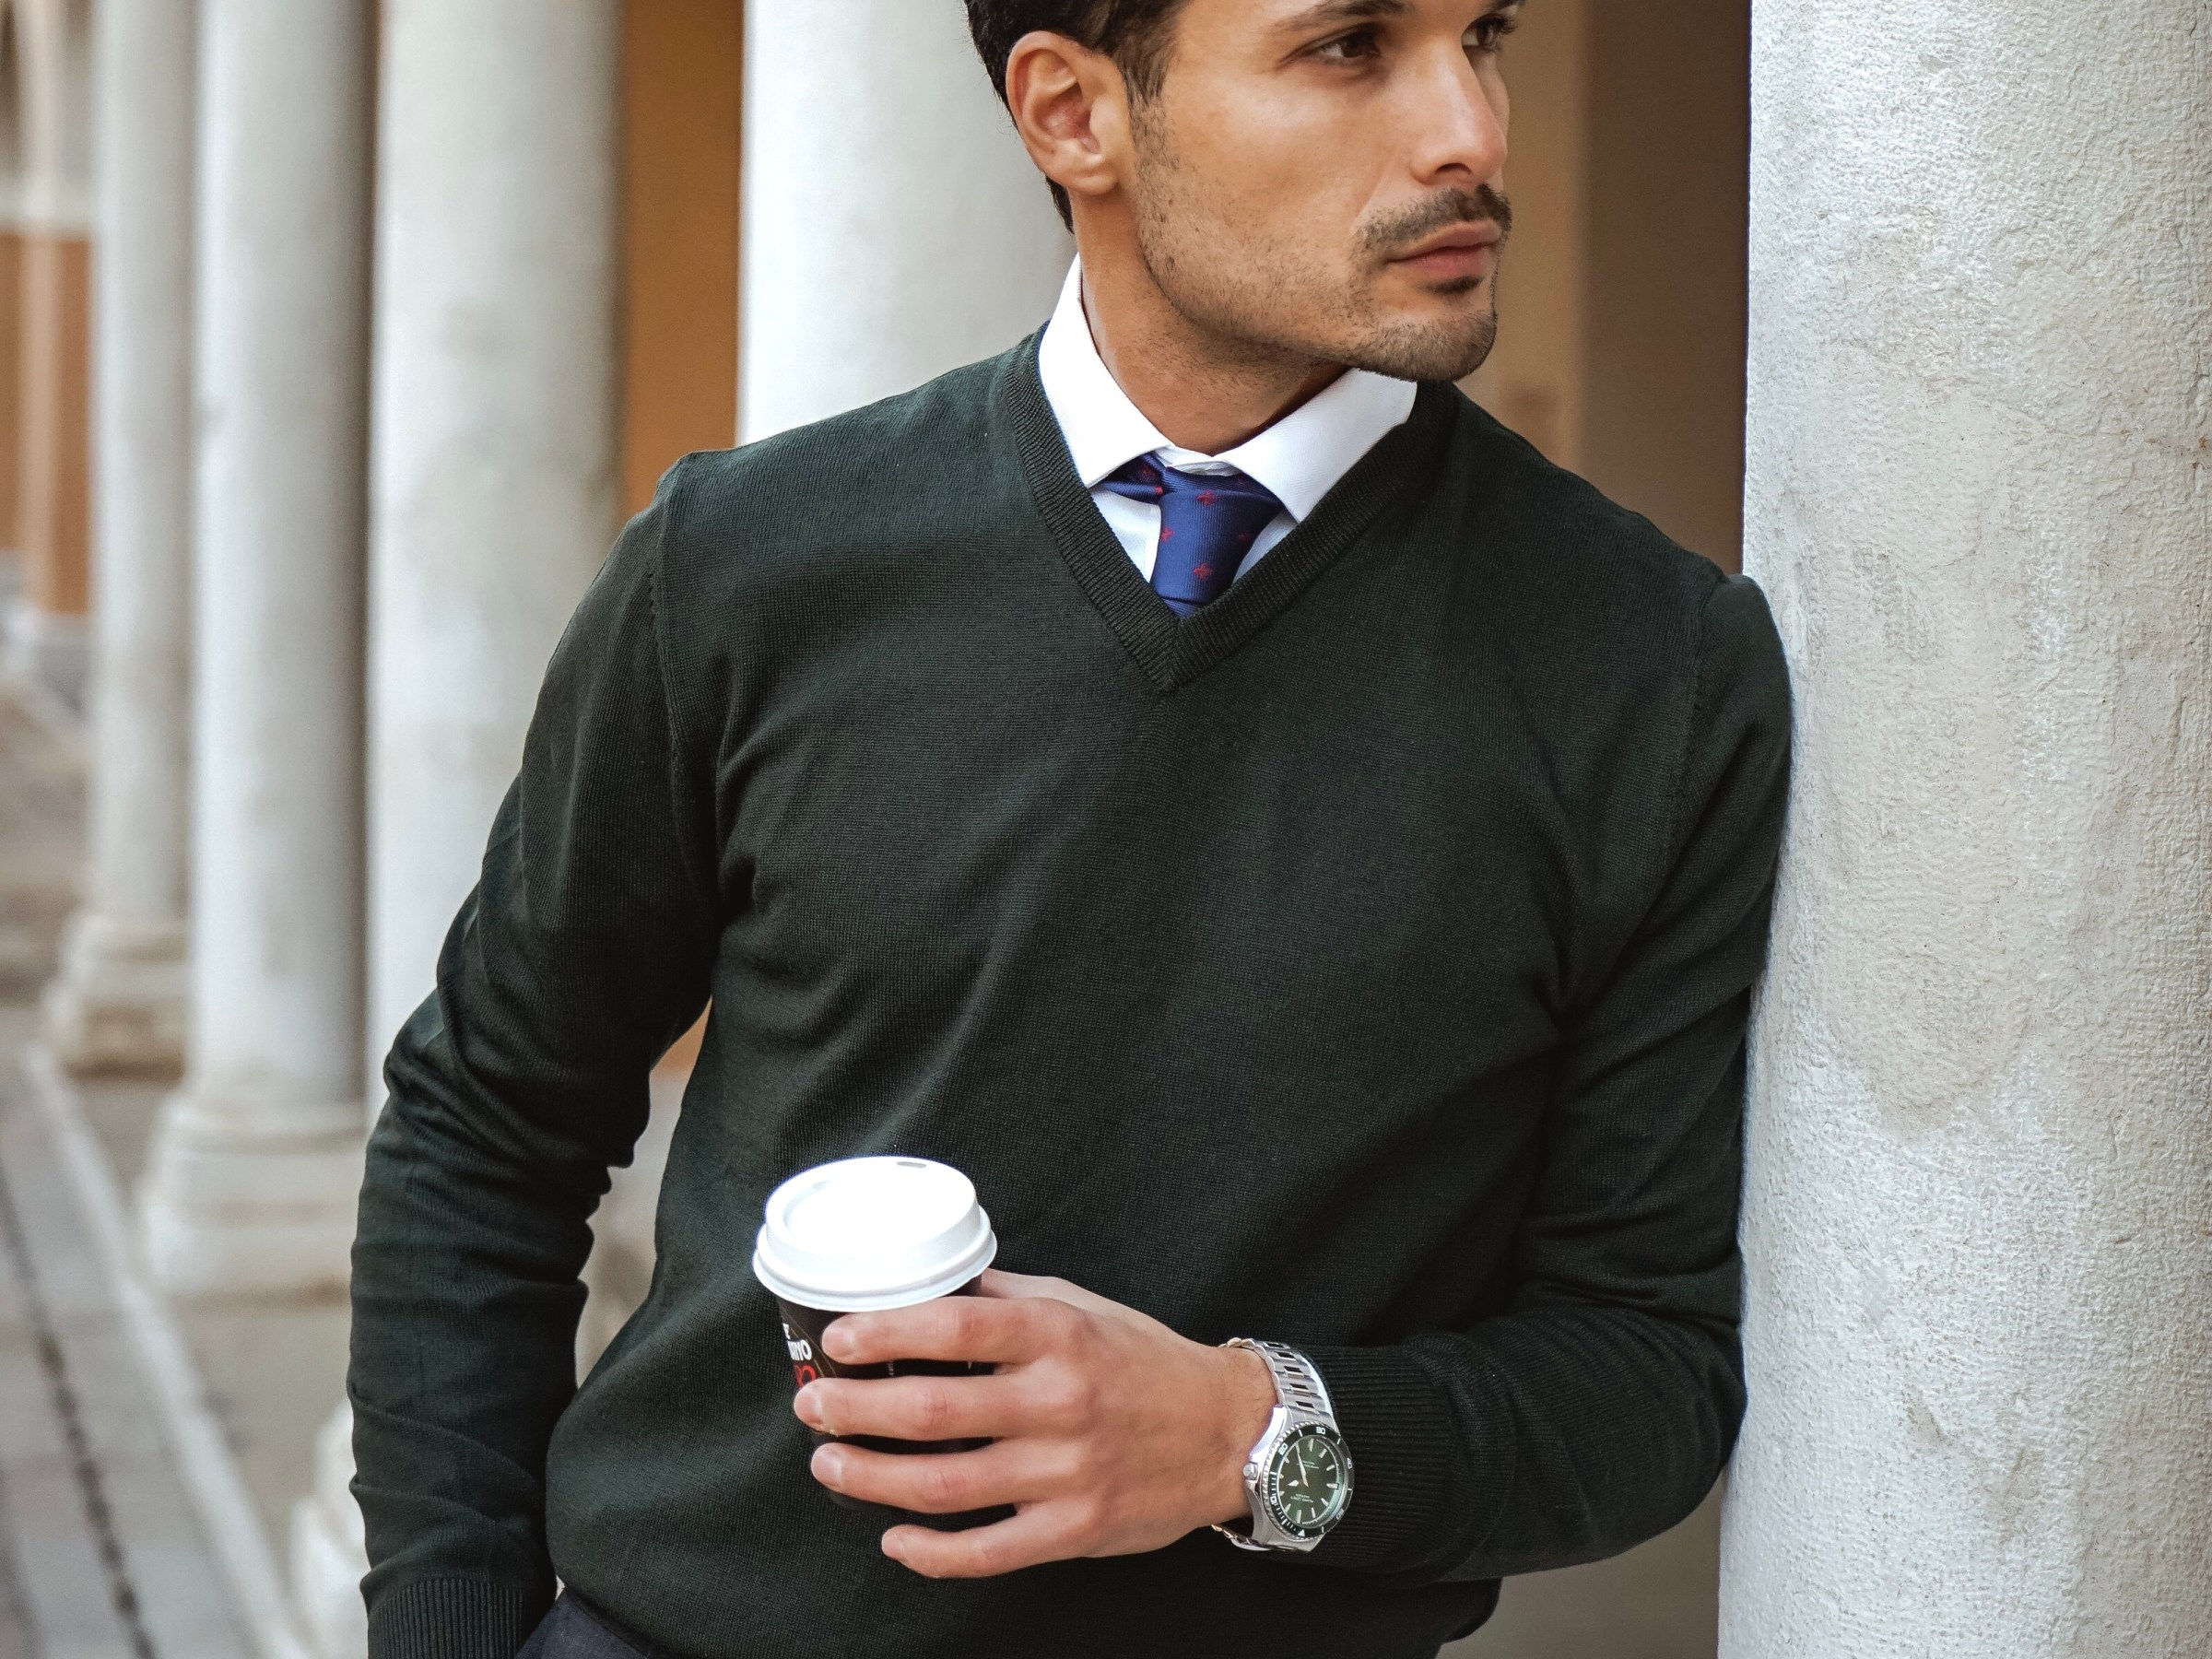 ITALIAN MALE INFLUENCER HOW TO BECOME THE BEST ON FASHION 2021